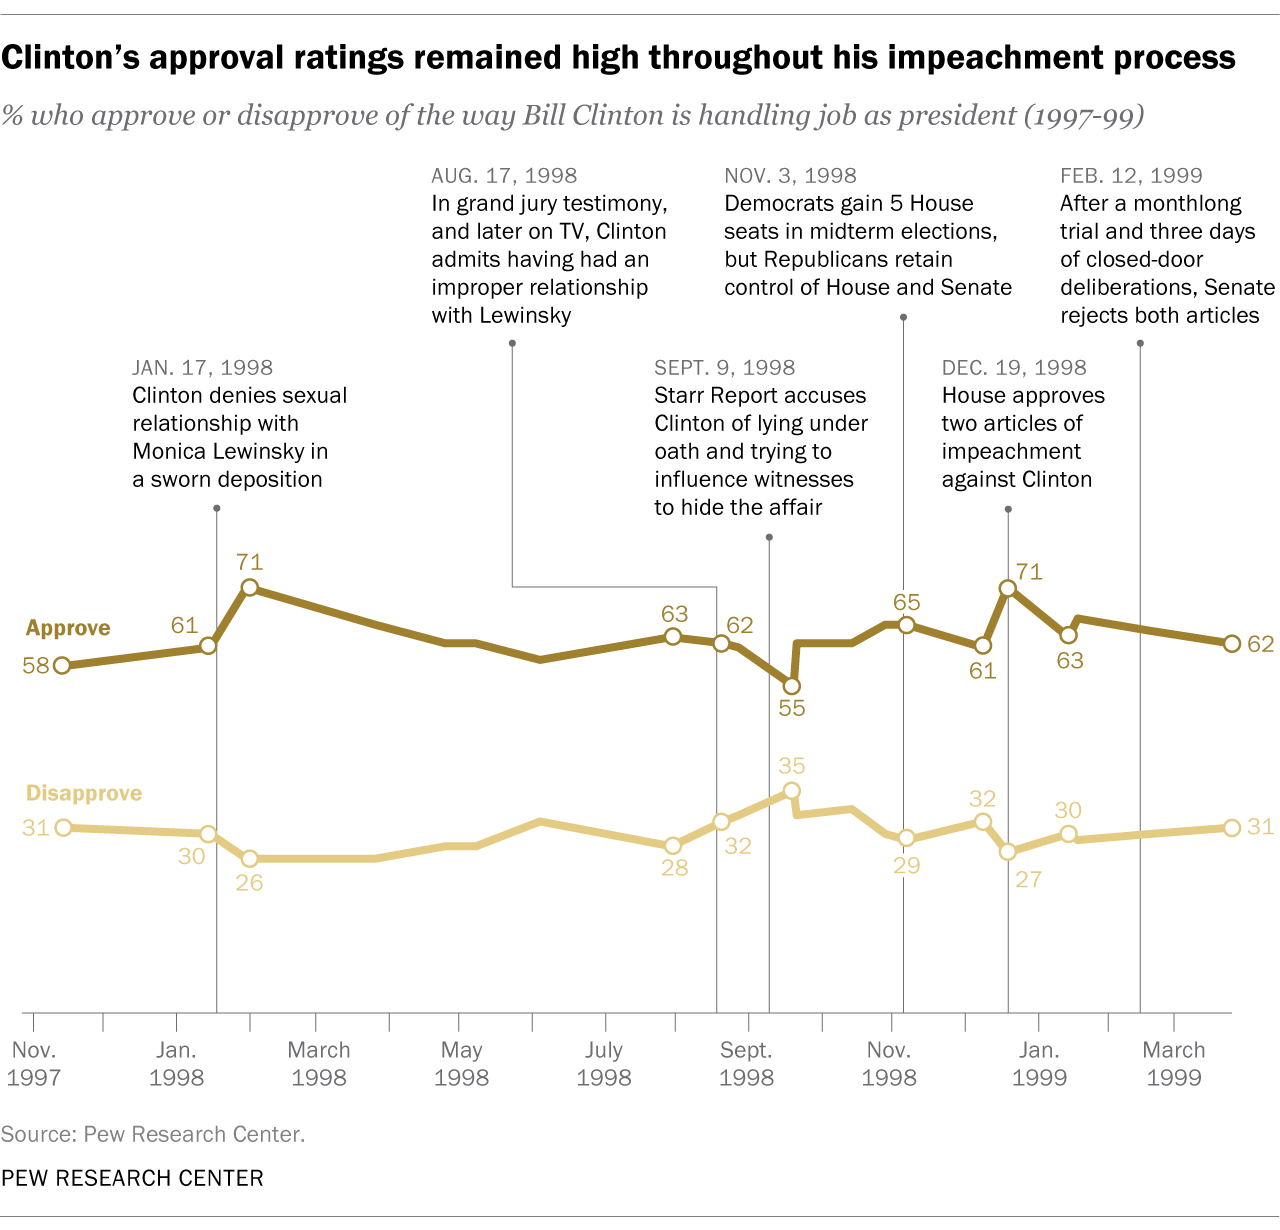 Clinton's approval ratings remained high throughout his impeachment process